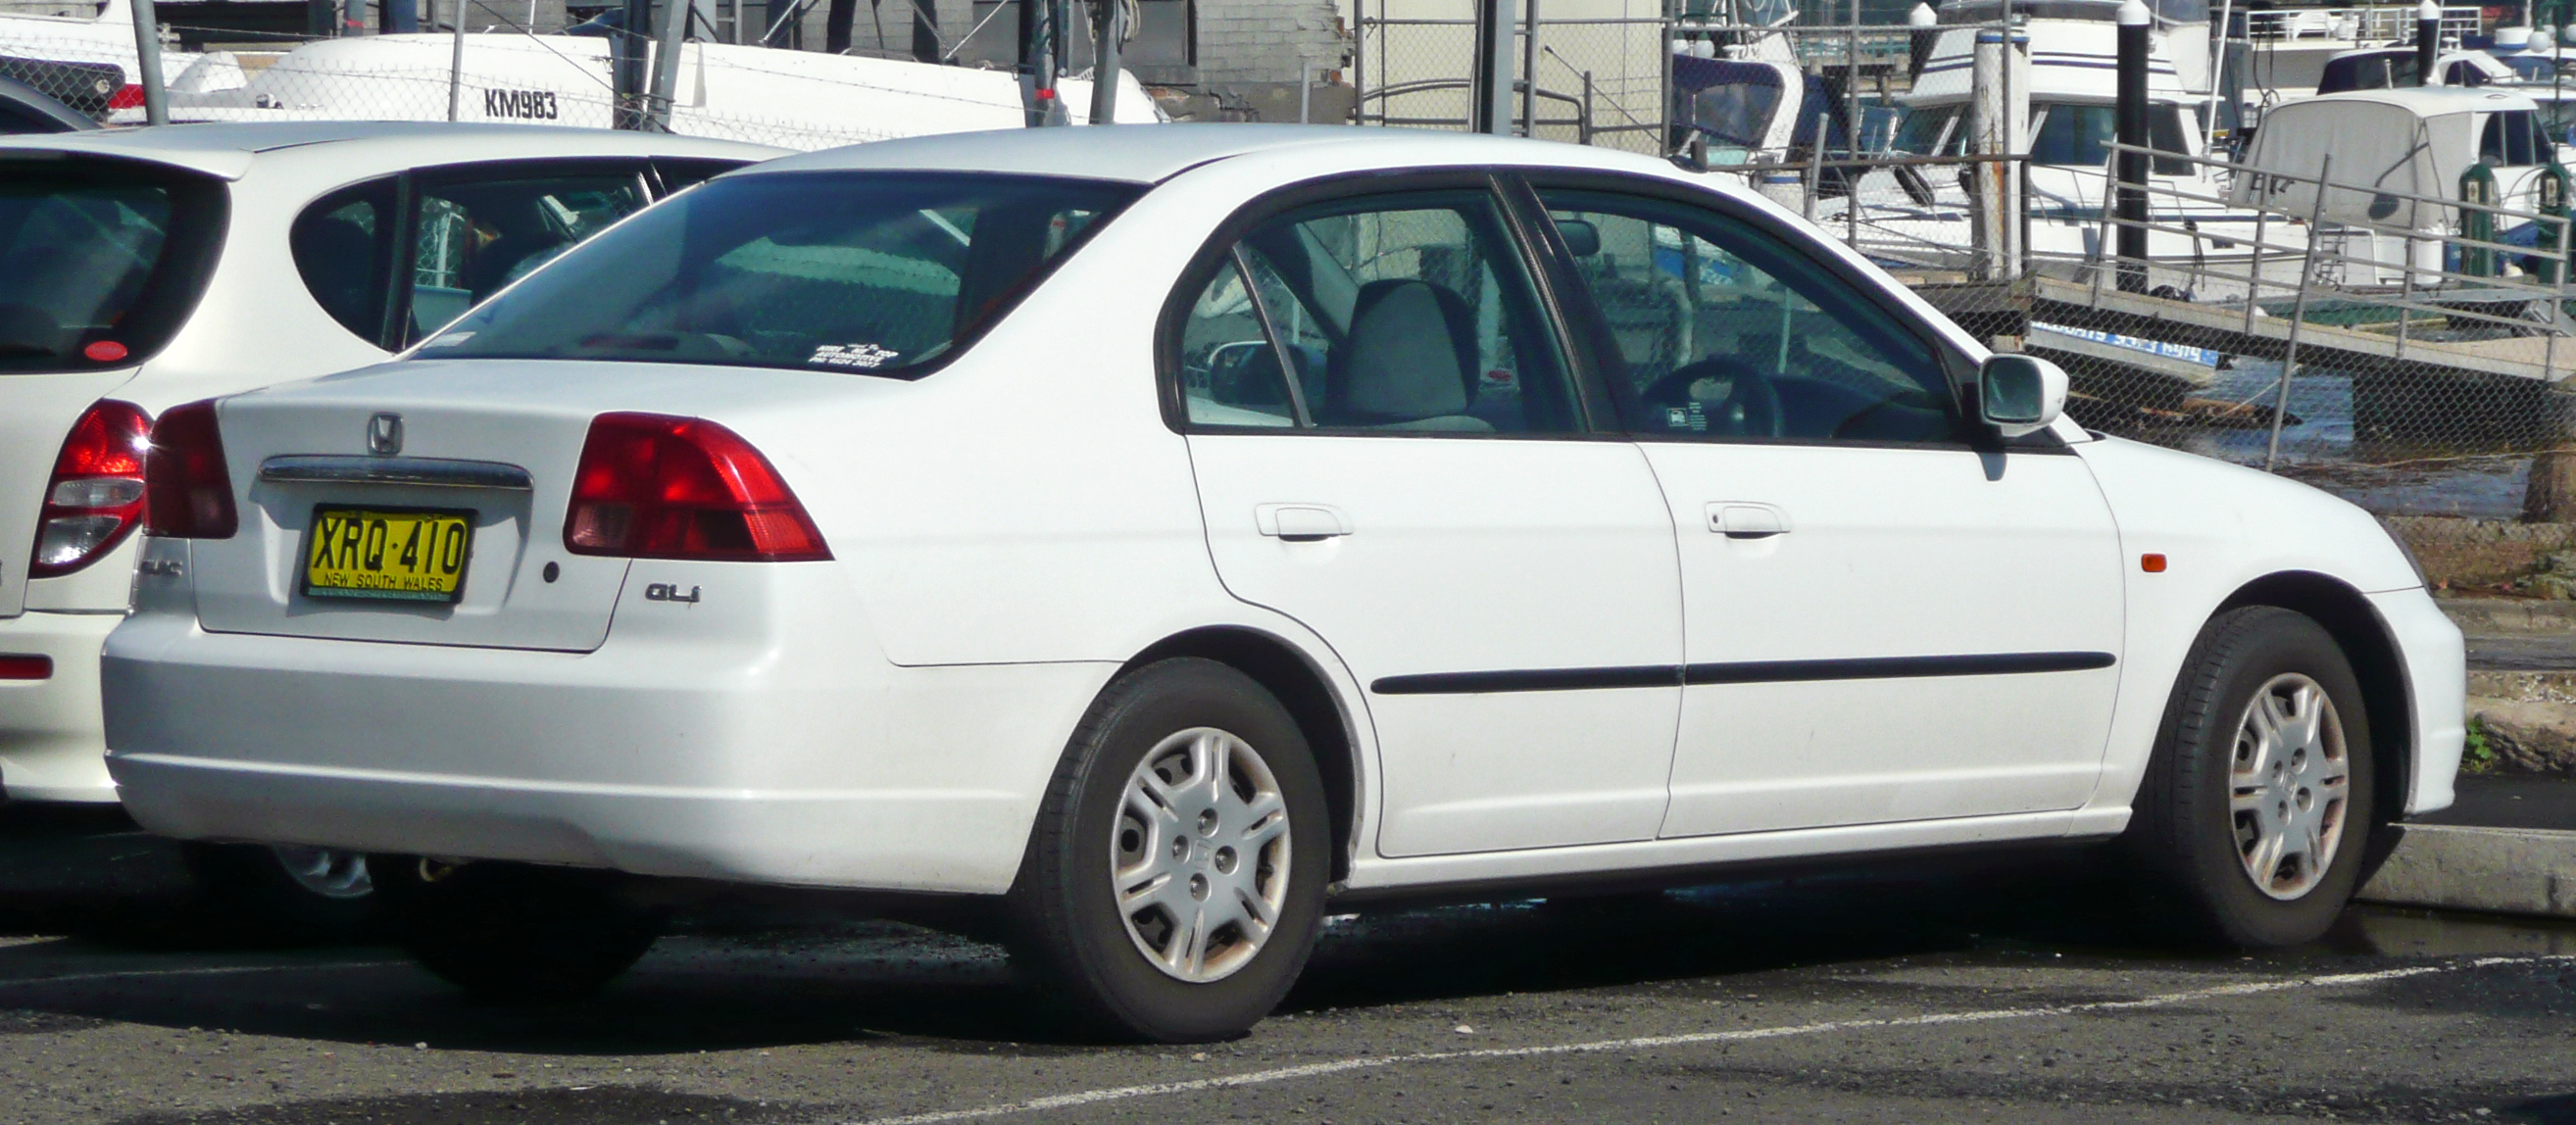 2002 Honda Civic Information And Photos Momentcar